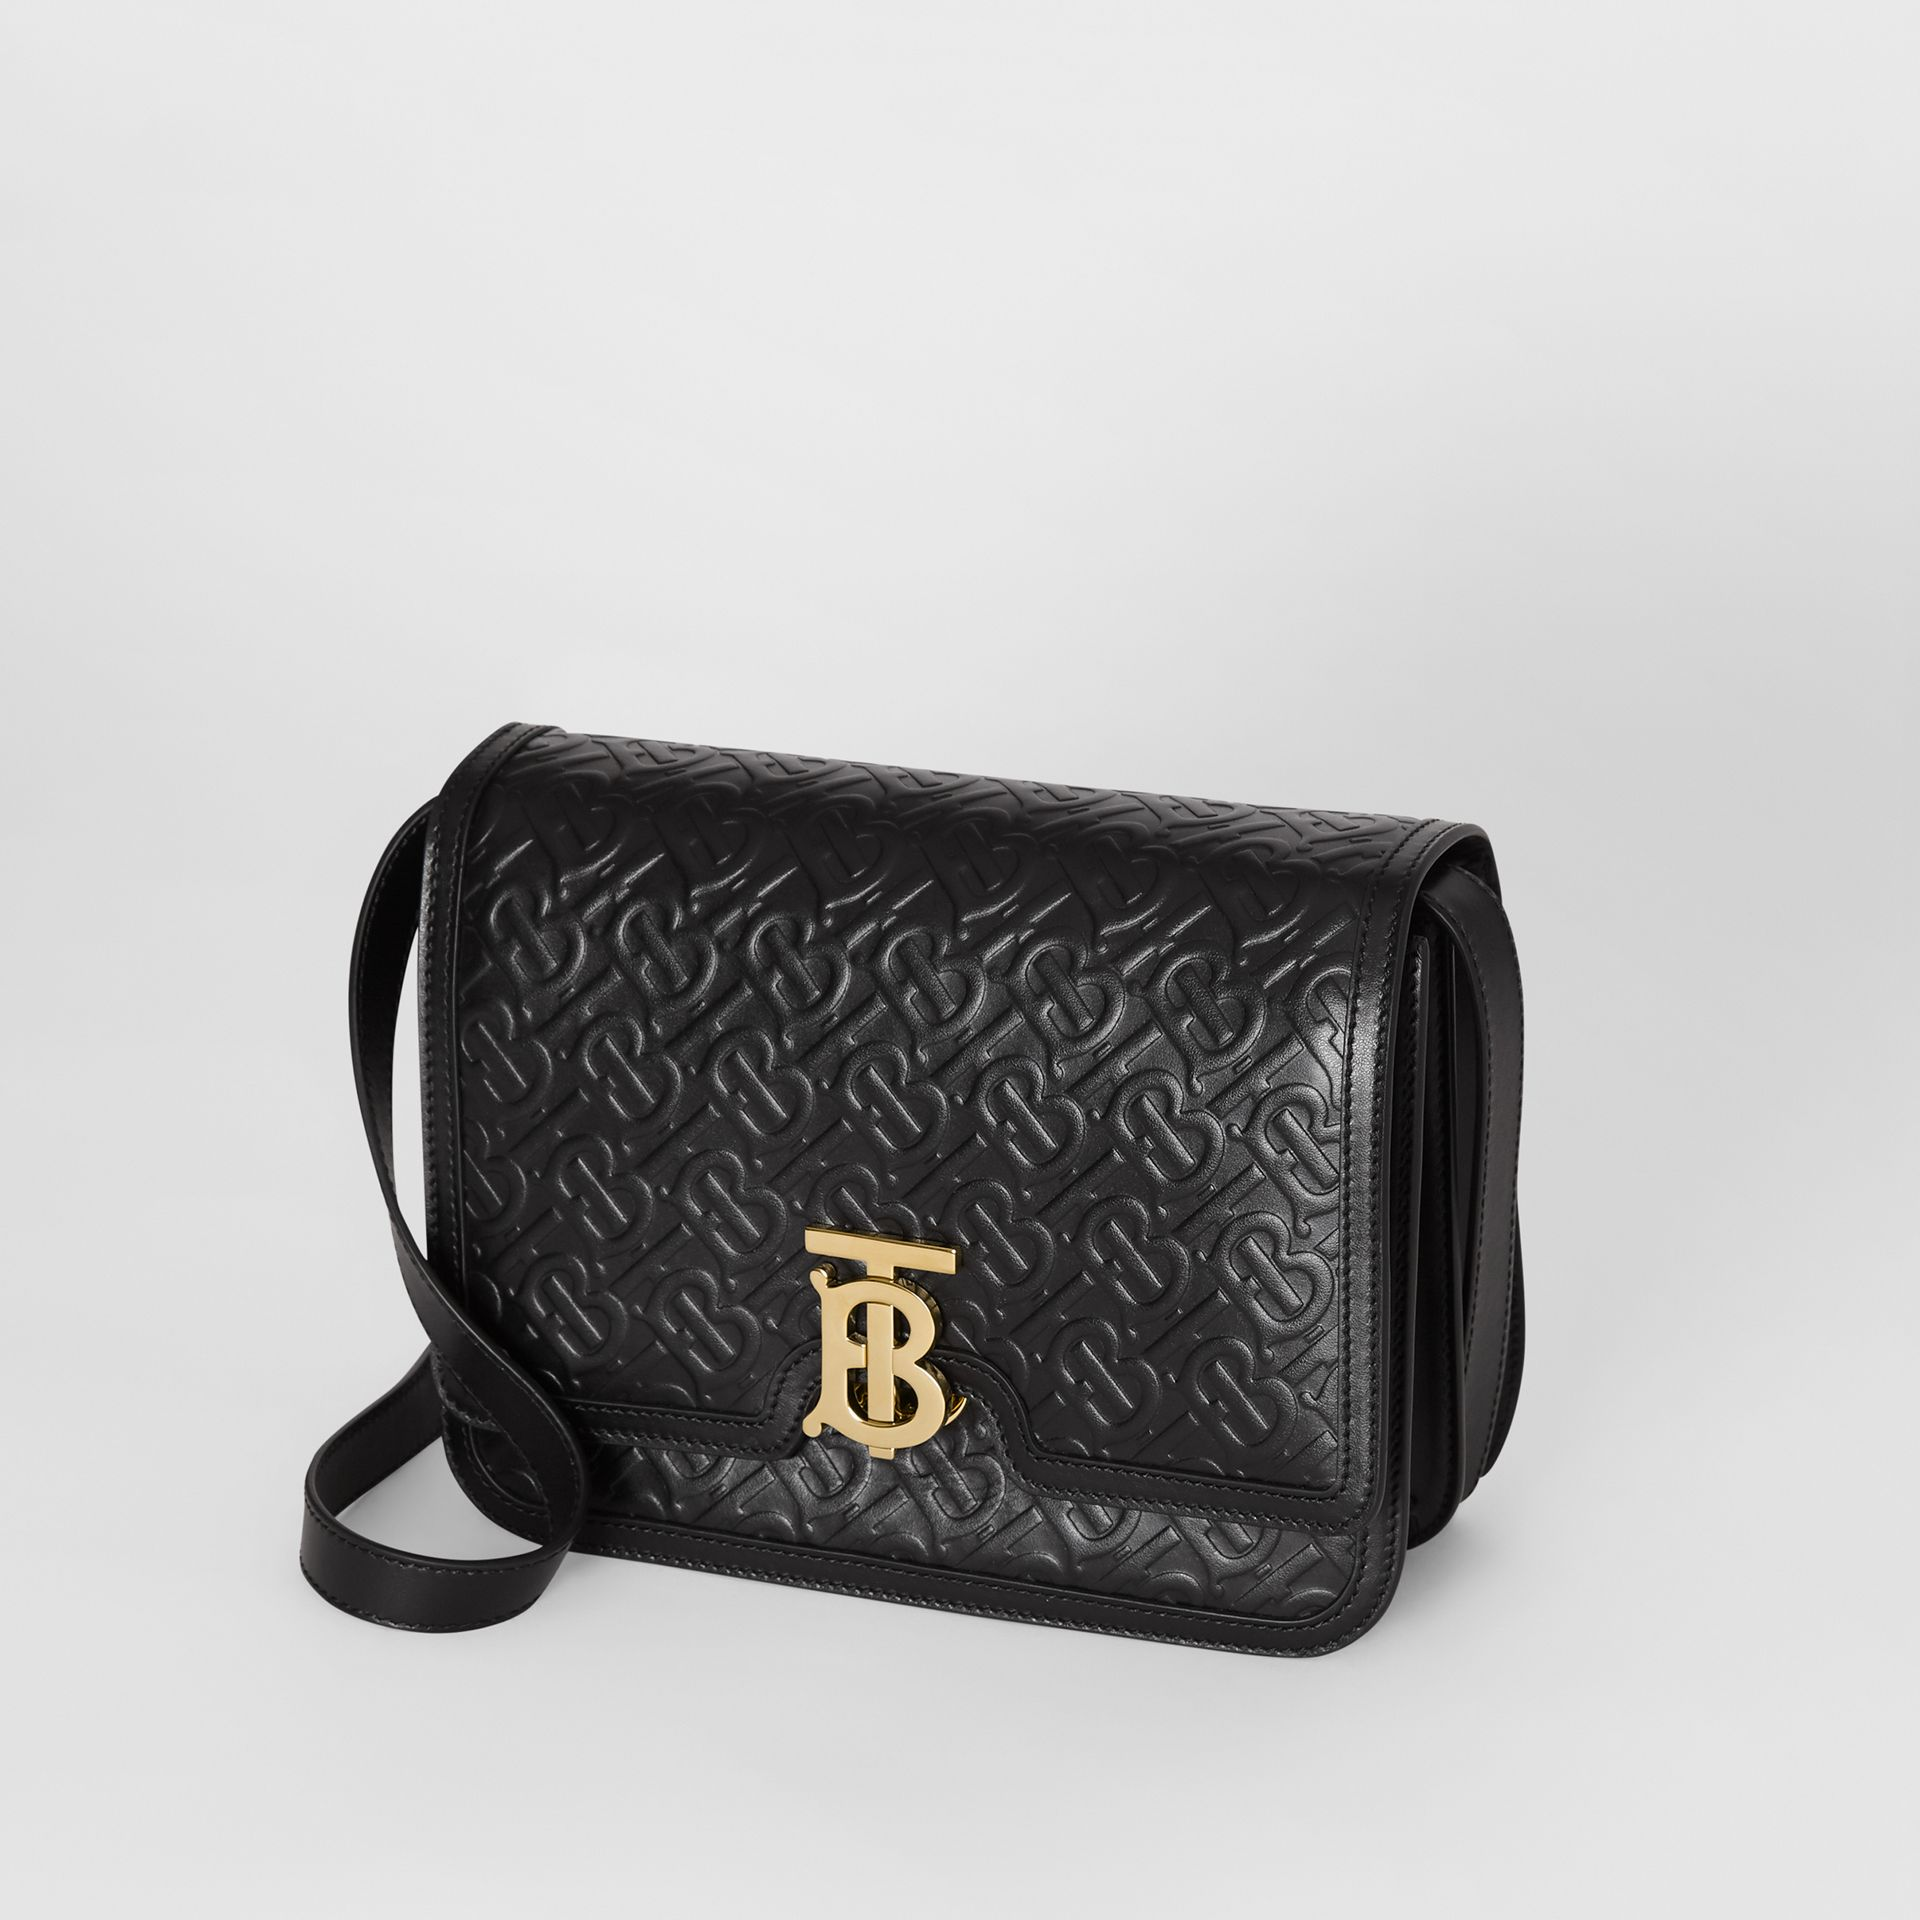 Medium Monogram Leather TB Bag in Black - Women | Burberry United States - gallery image 3